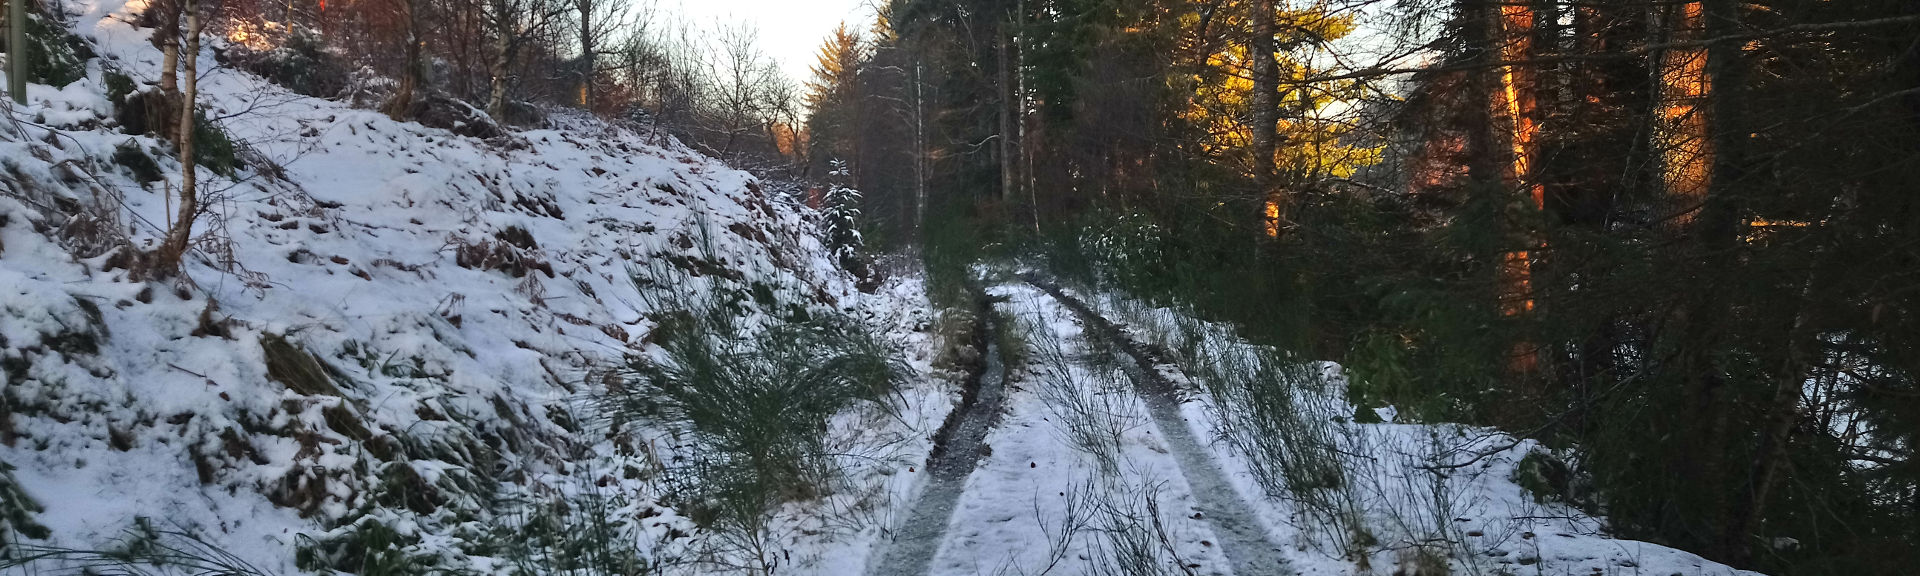 Drummuir Loch Park in late winter 2018, off road trail through